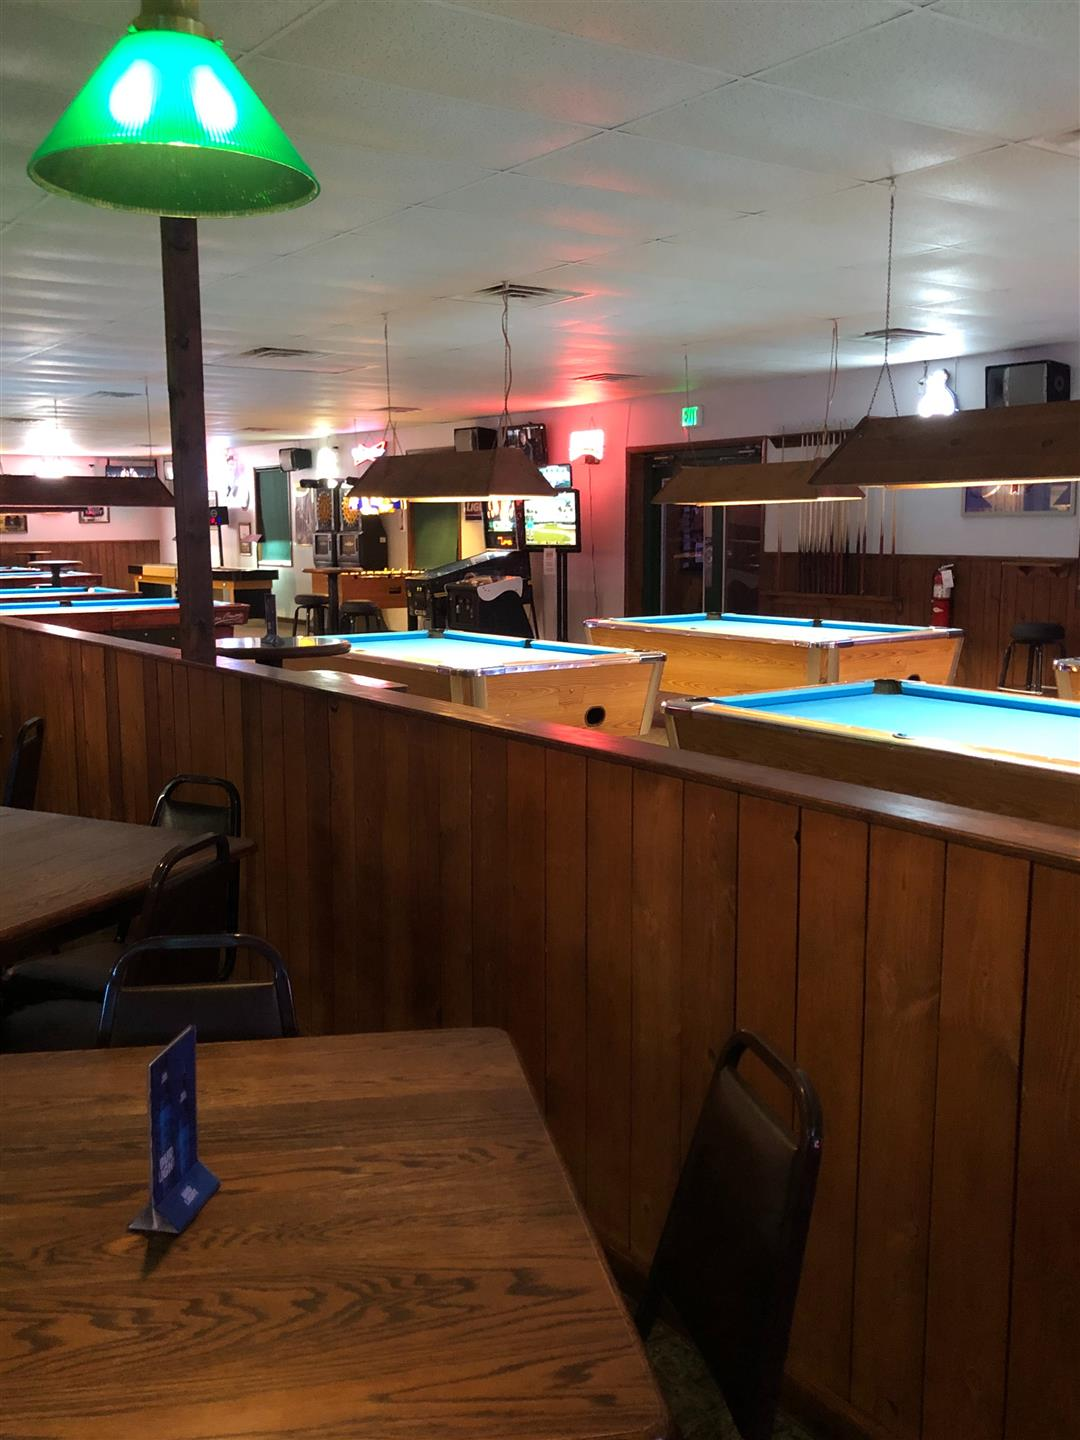 dining area overlooking pool tables